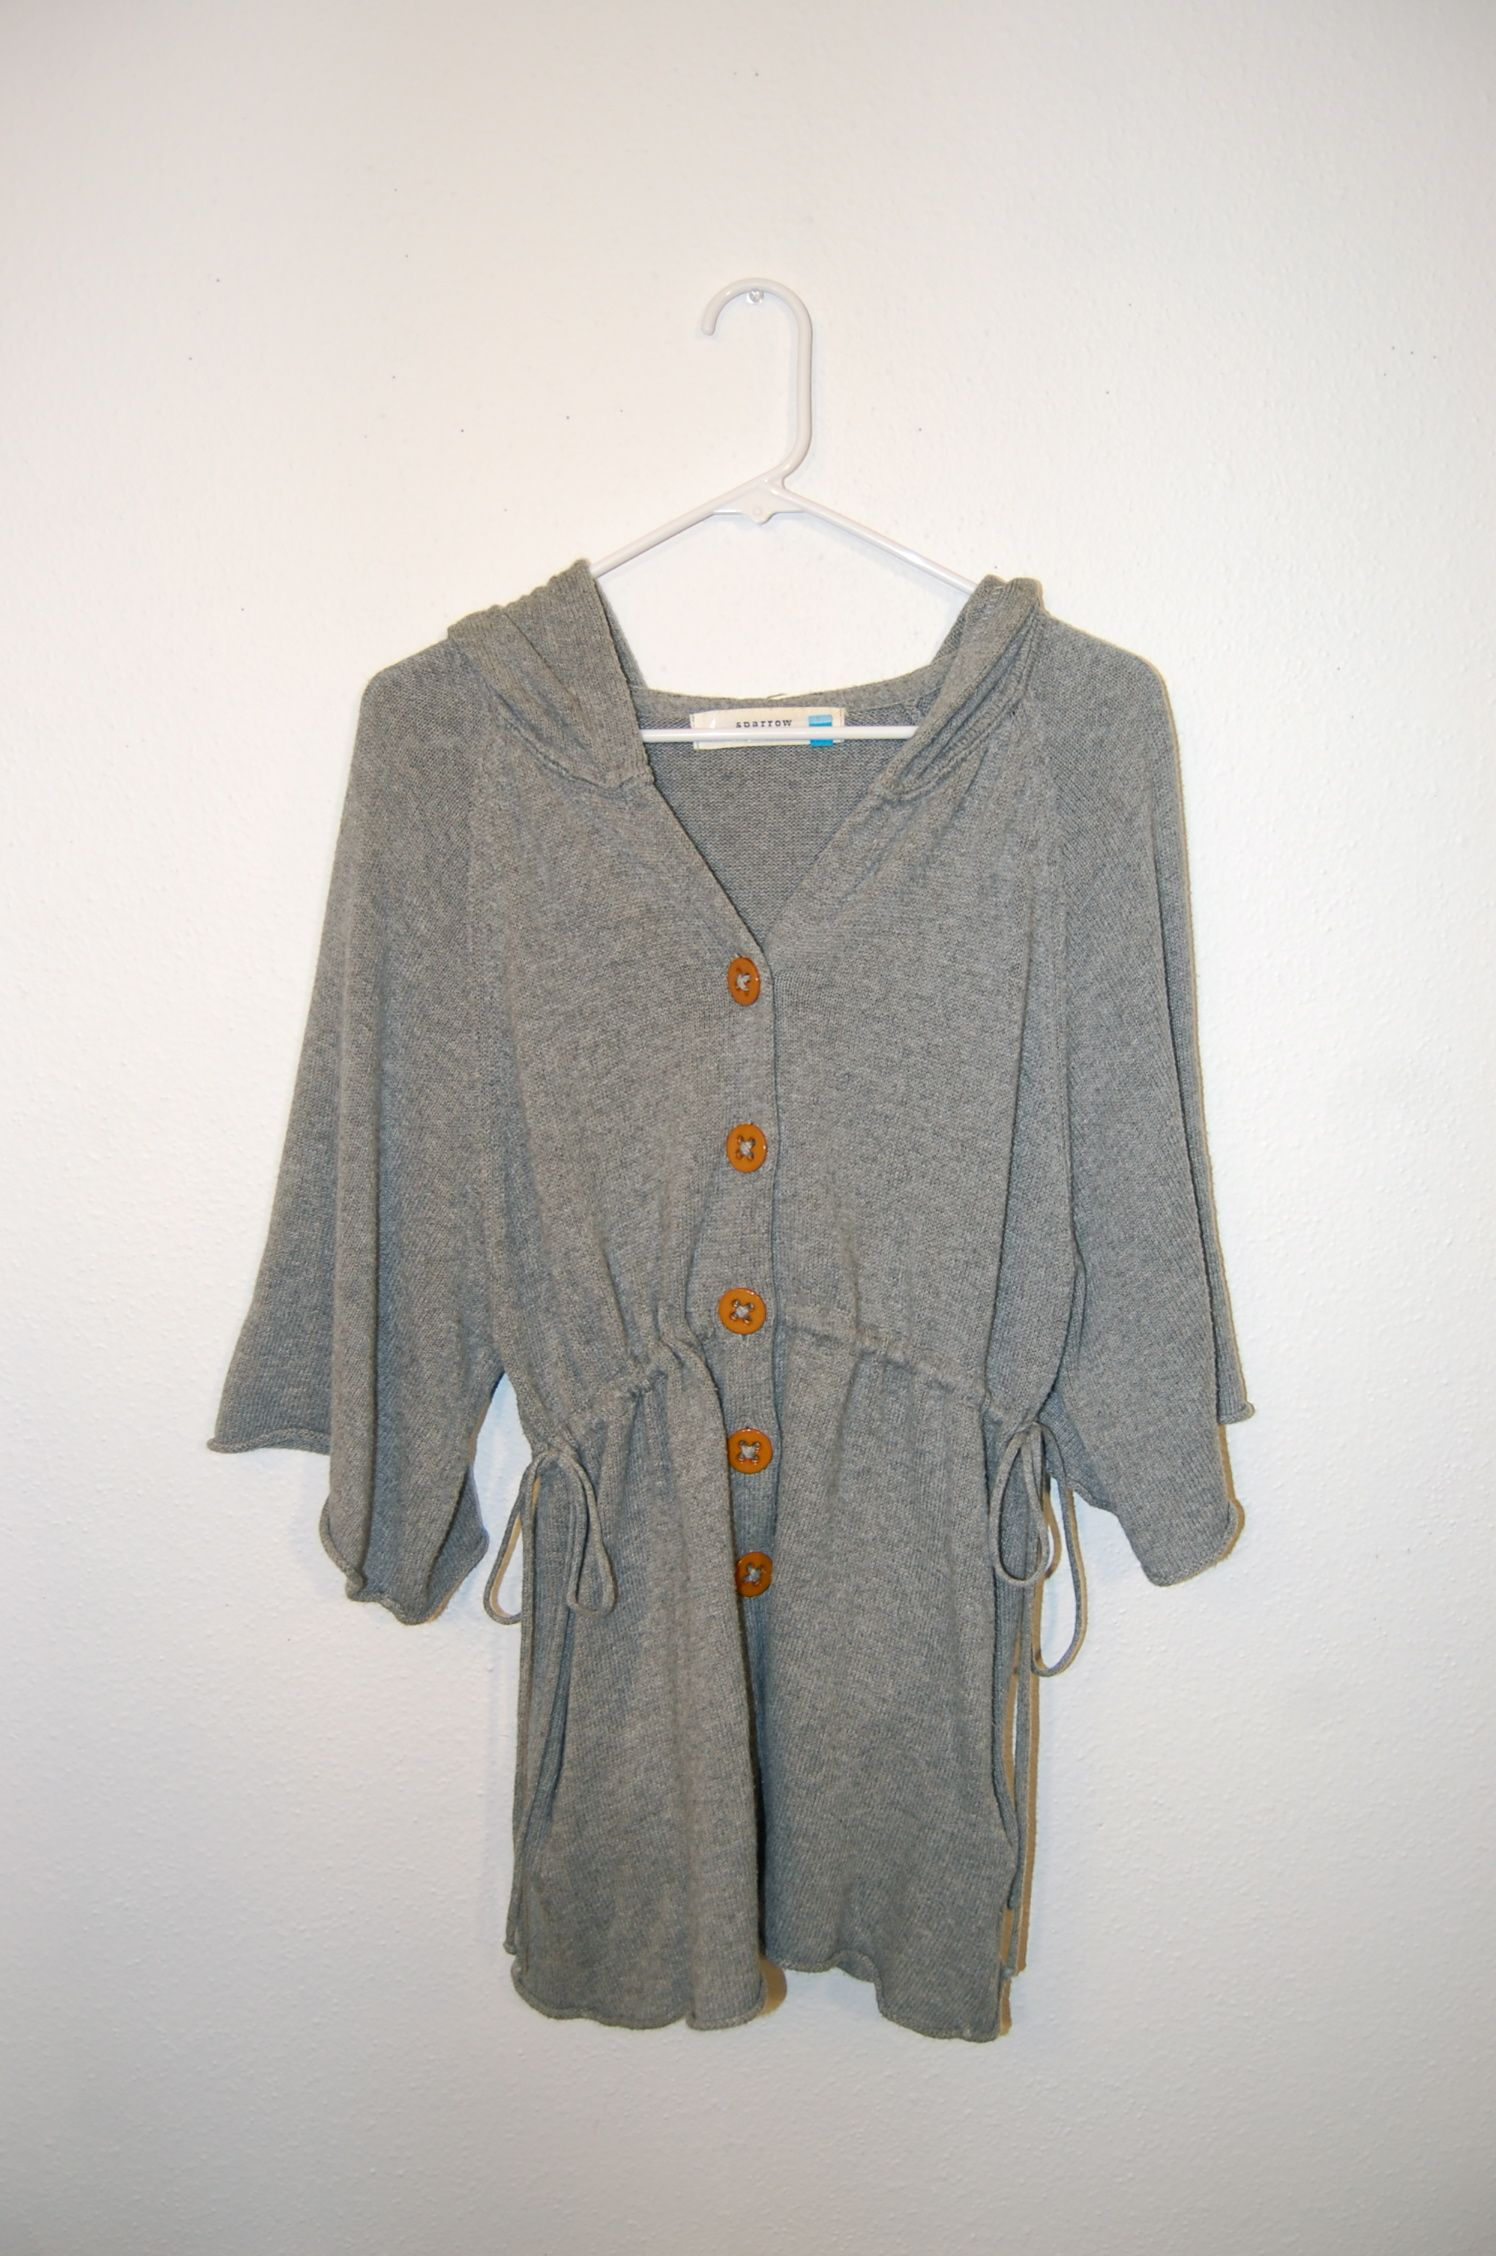 SPARROW for Anthropologie - Grey Hooded sweater with zippered ...